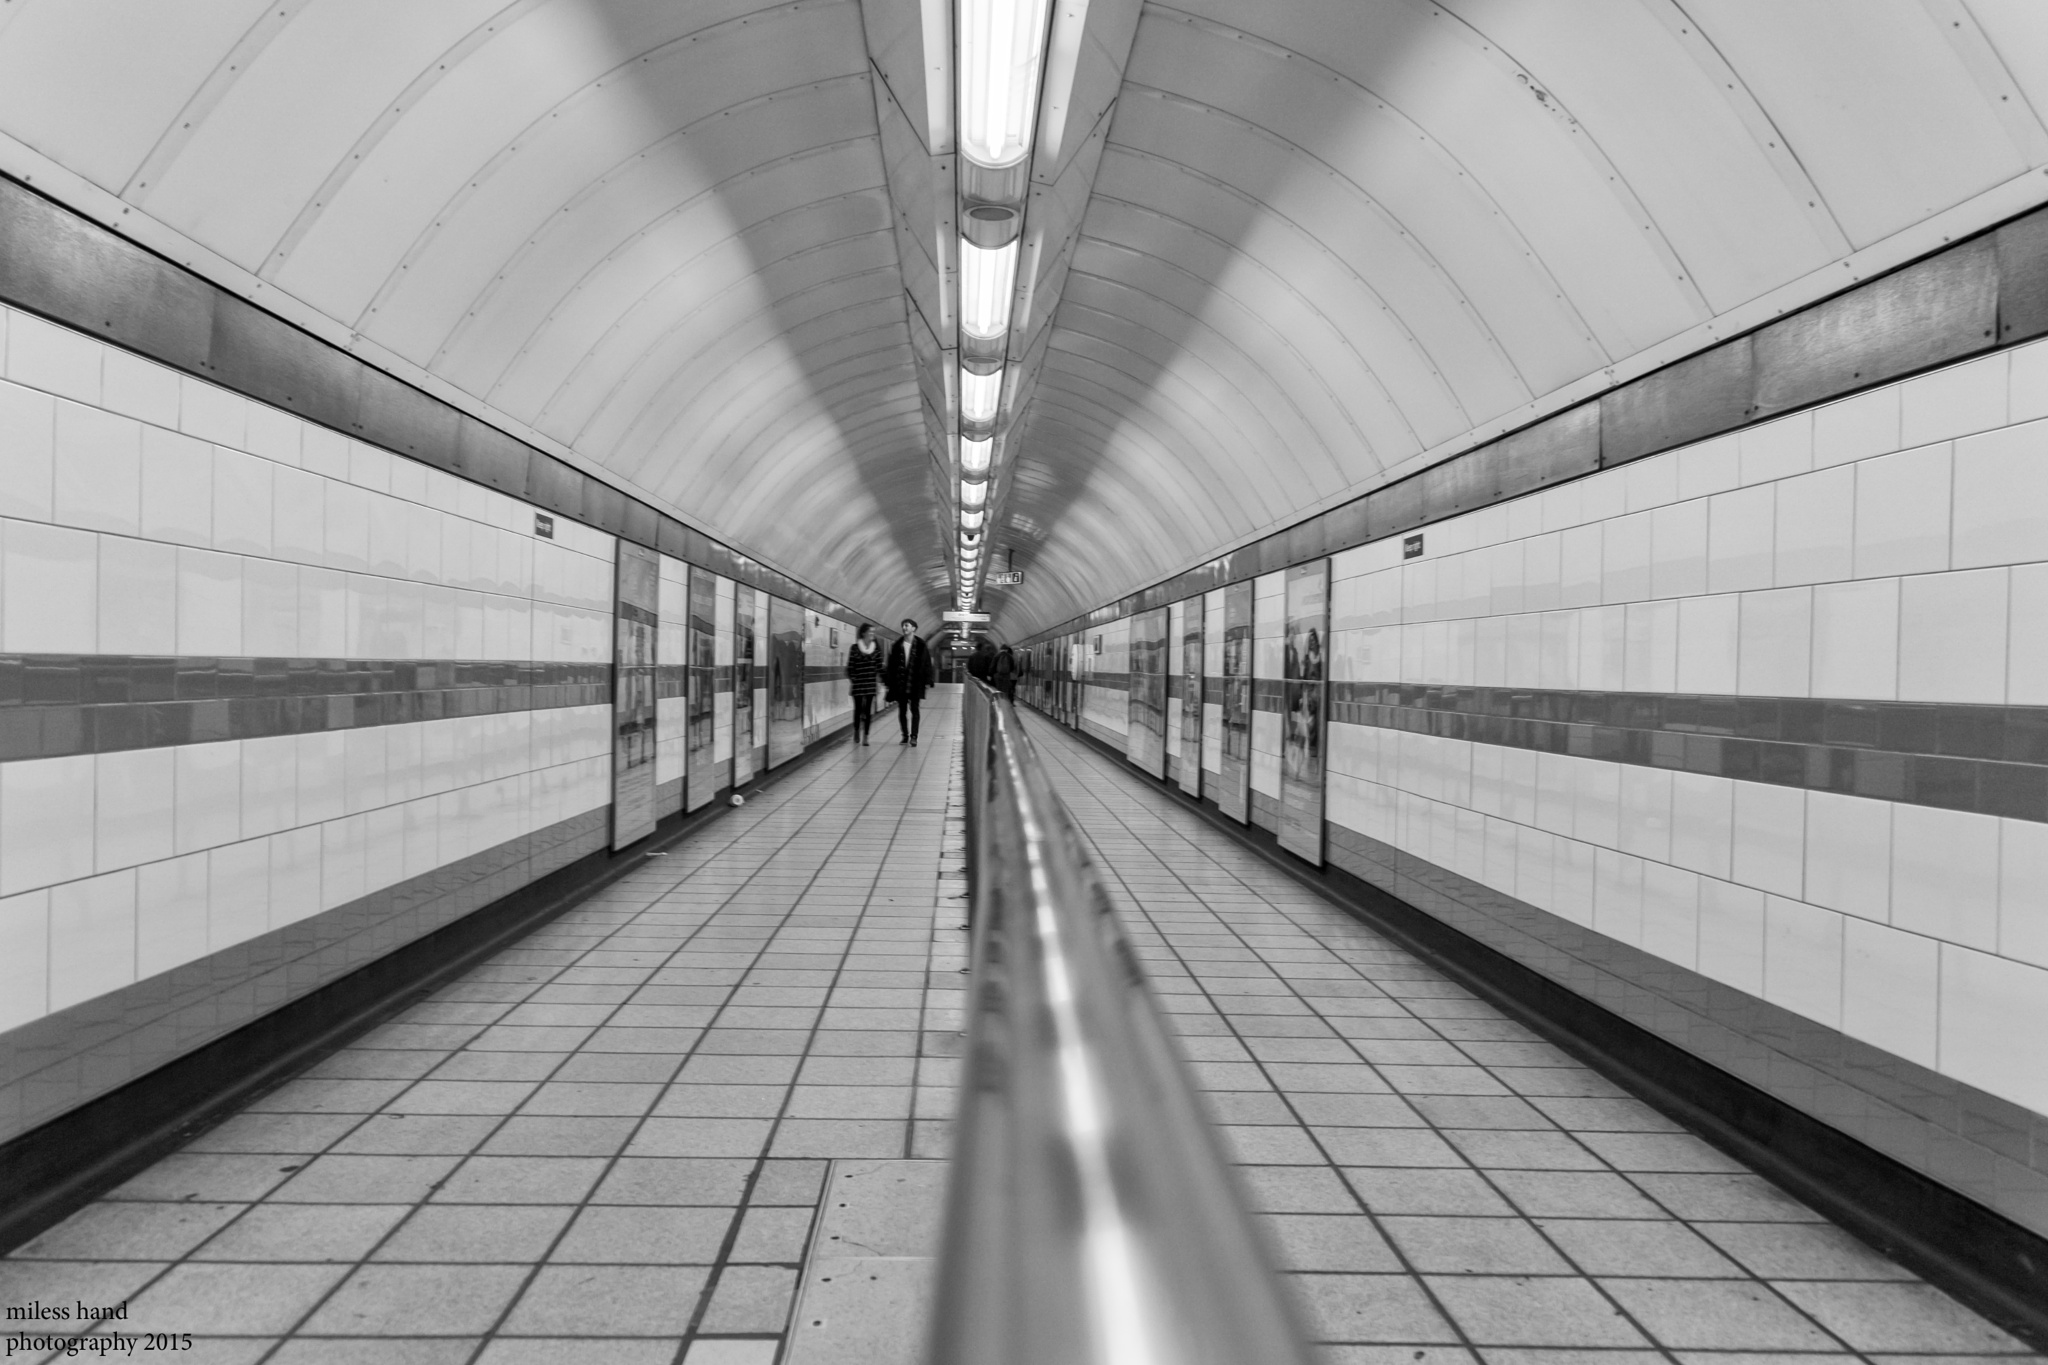 Leading Lines by mileshandphotography